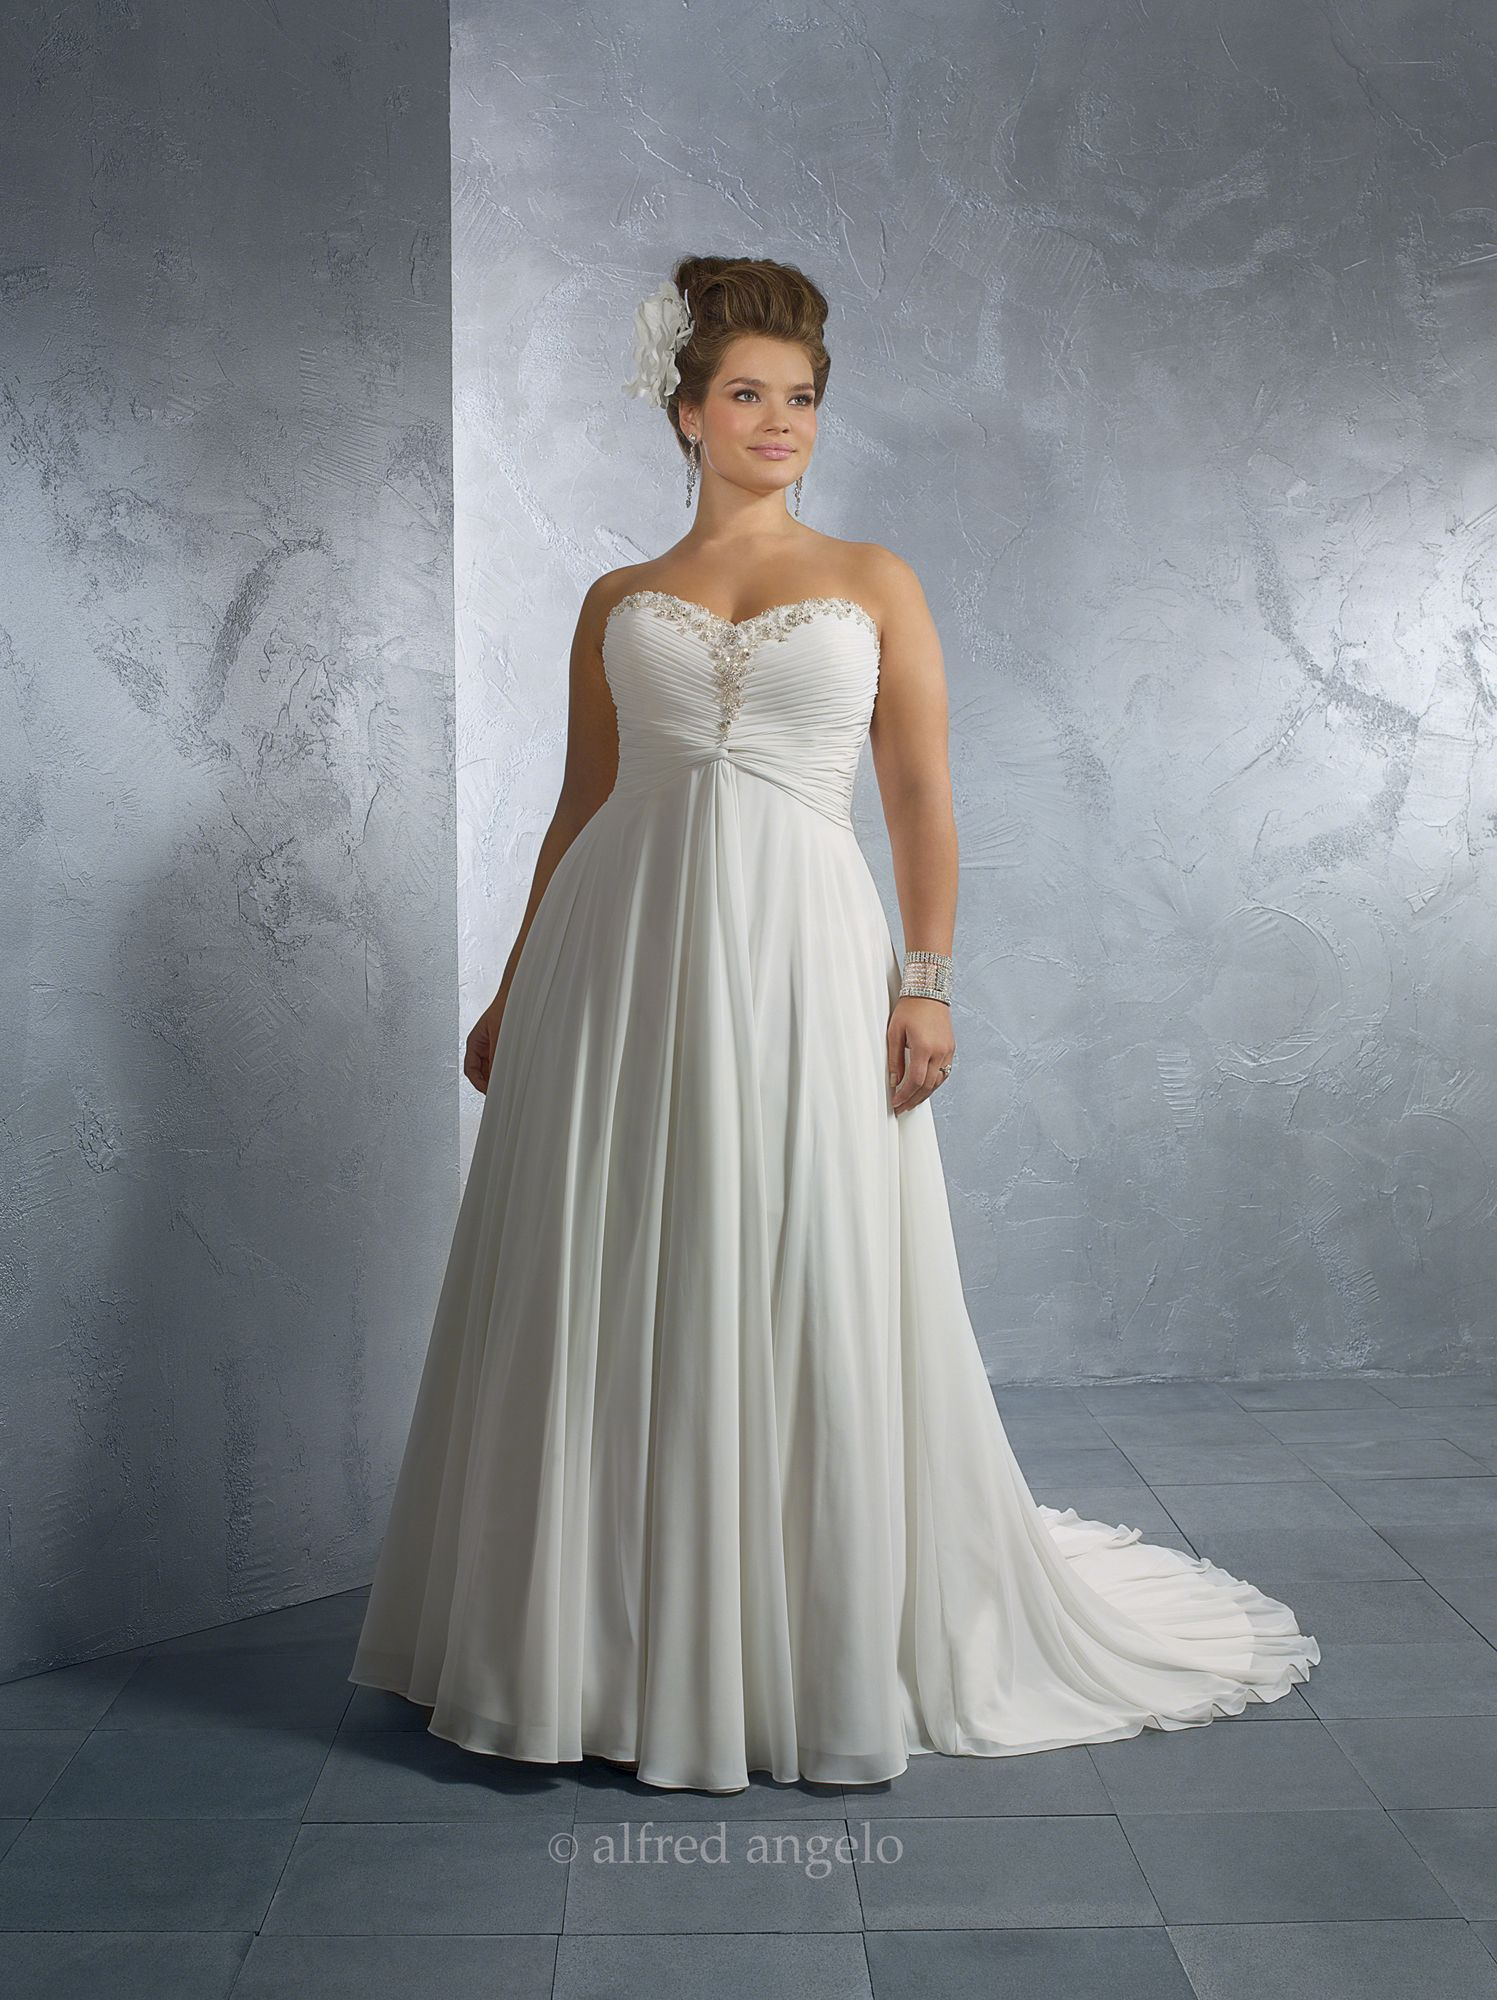 My fantasy wedding dress. Size18W-22W. Hopefully I can lose some ...